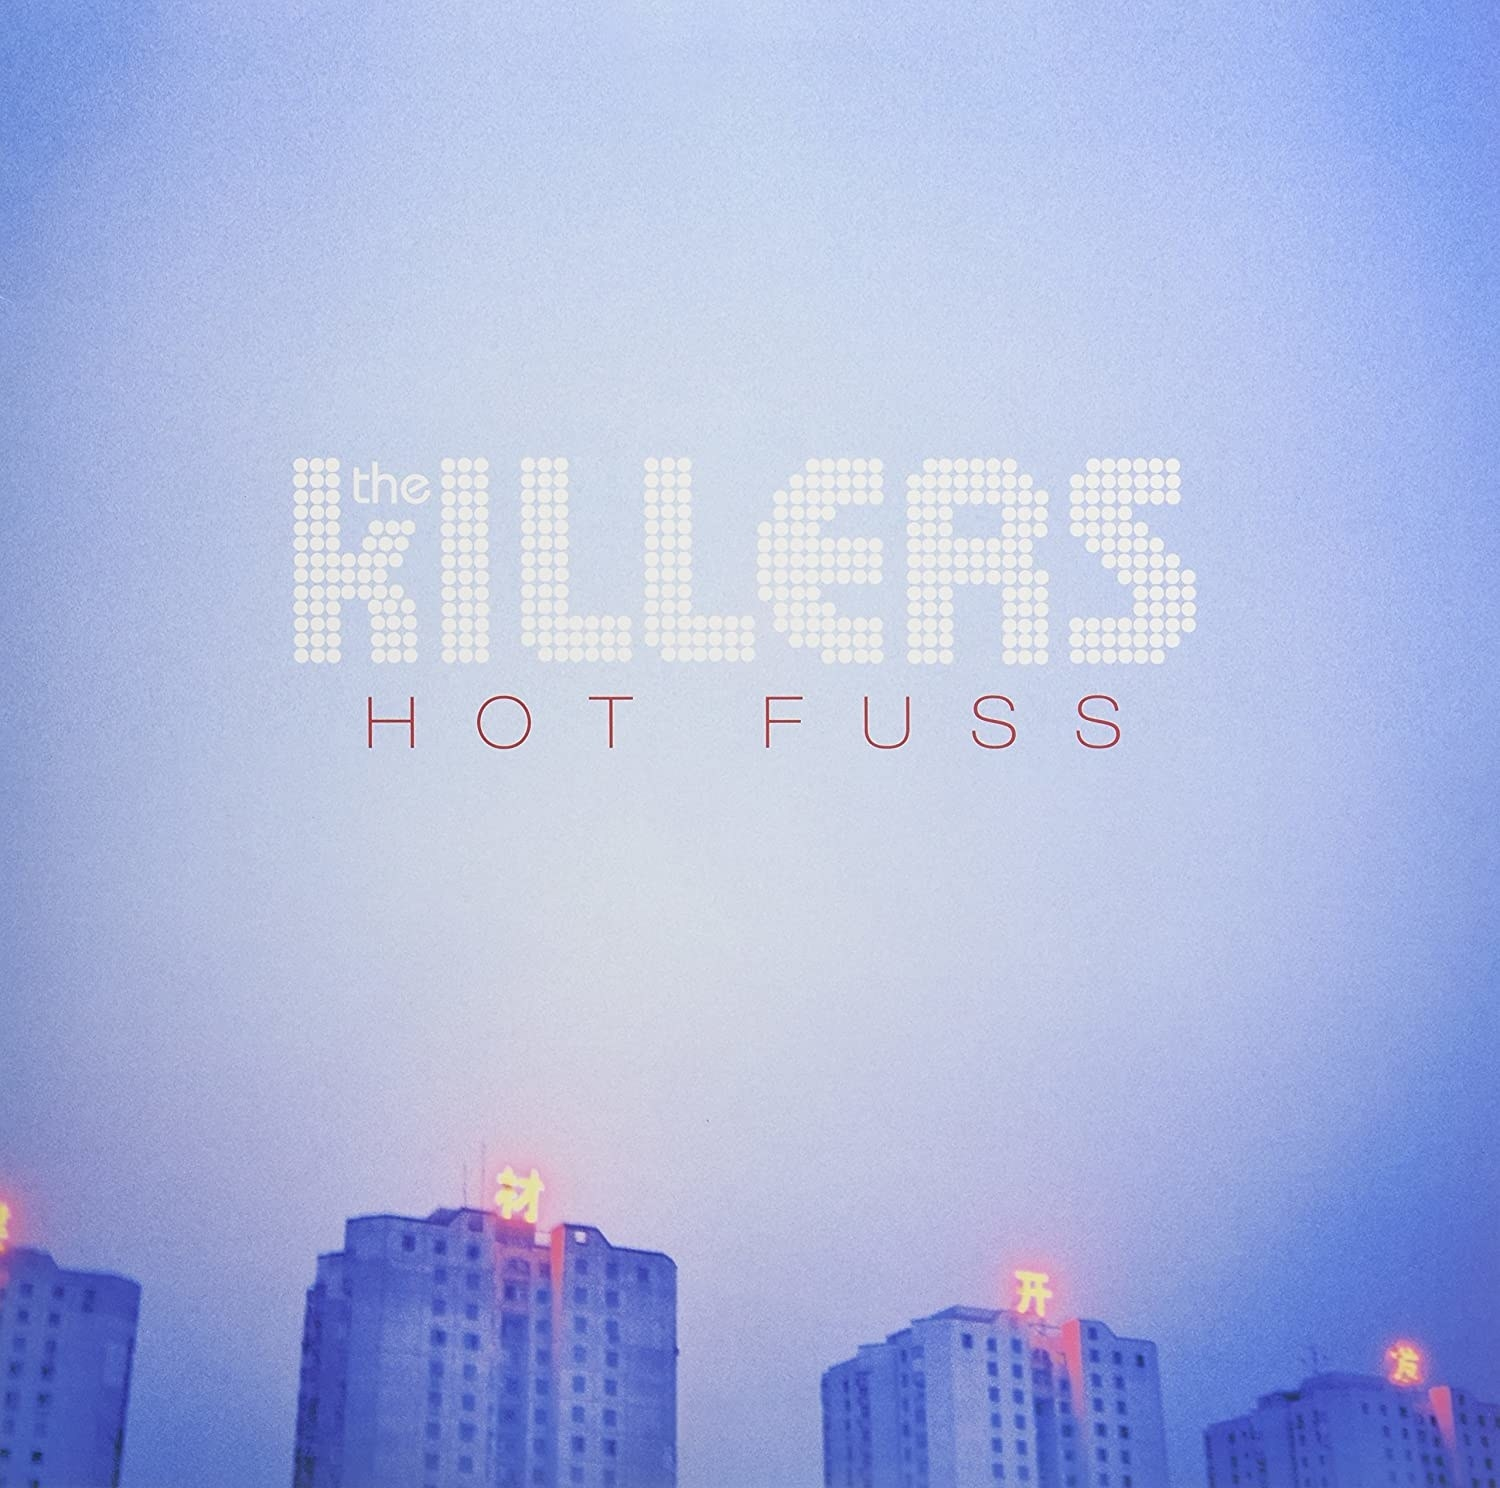 album cover of The Killers' Hot Fuss showing a hazy blue sky over high-rise buildings.